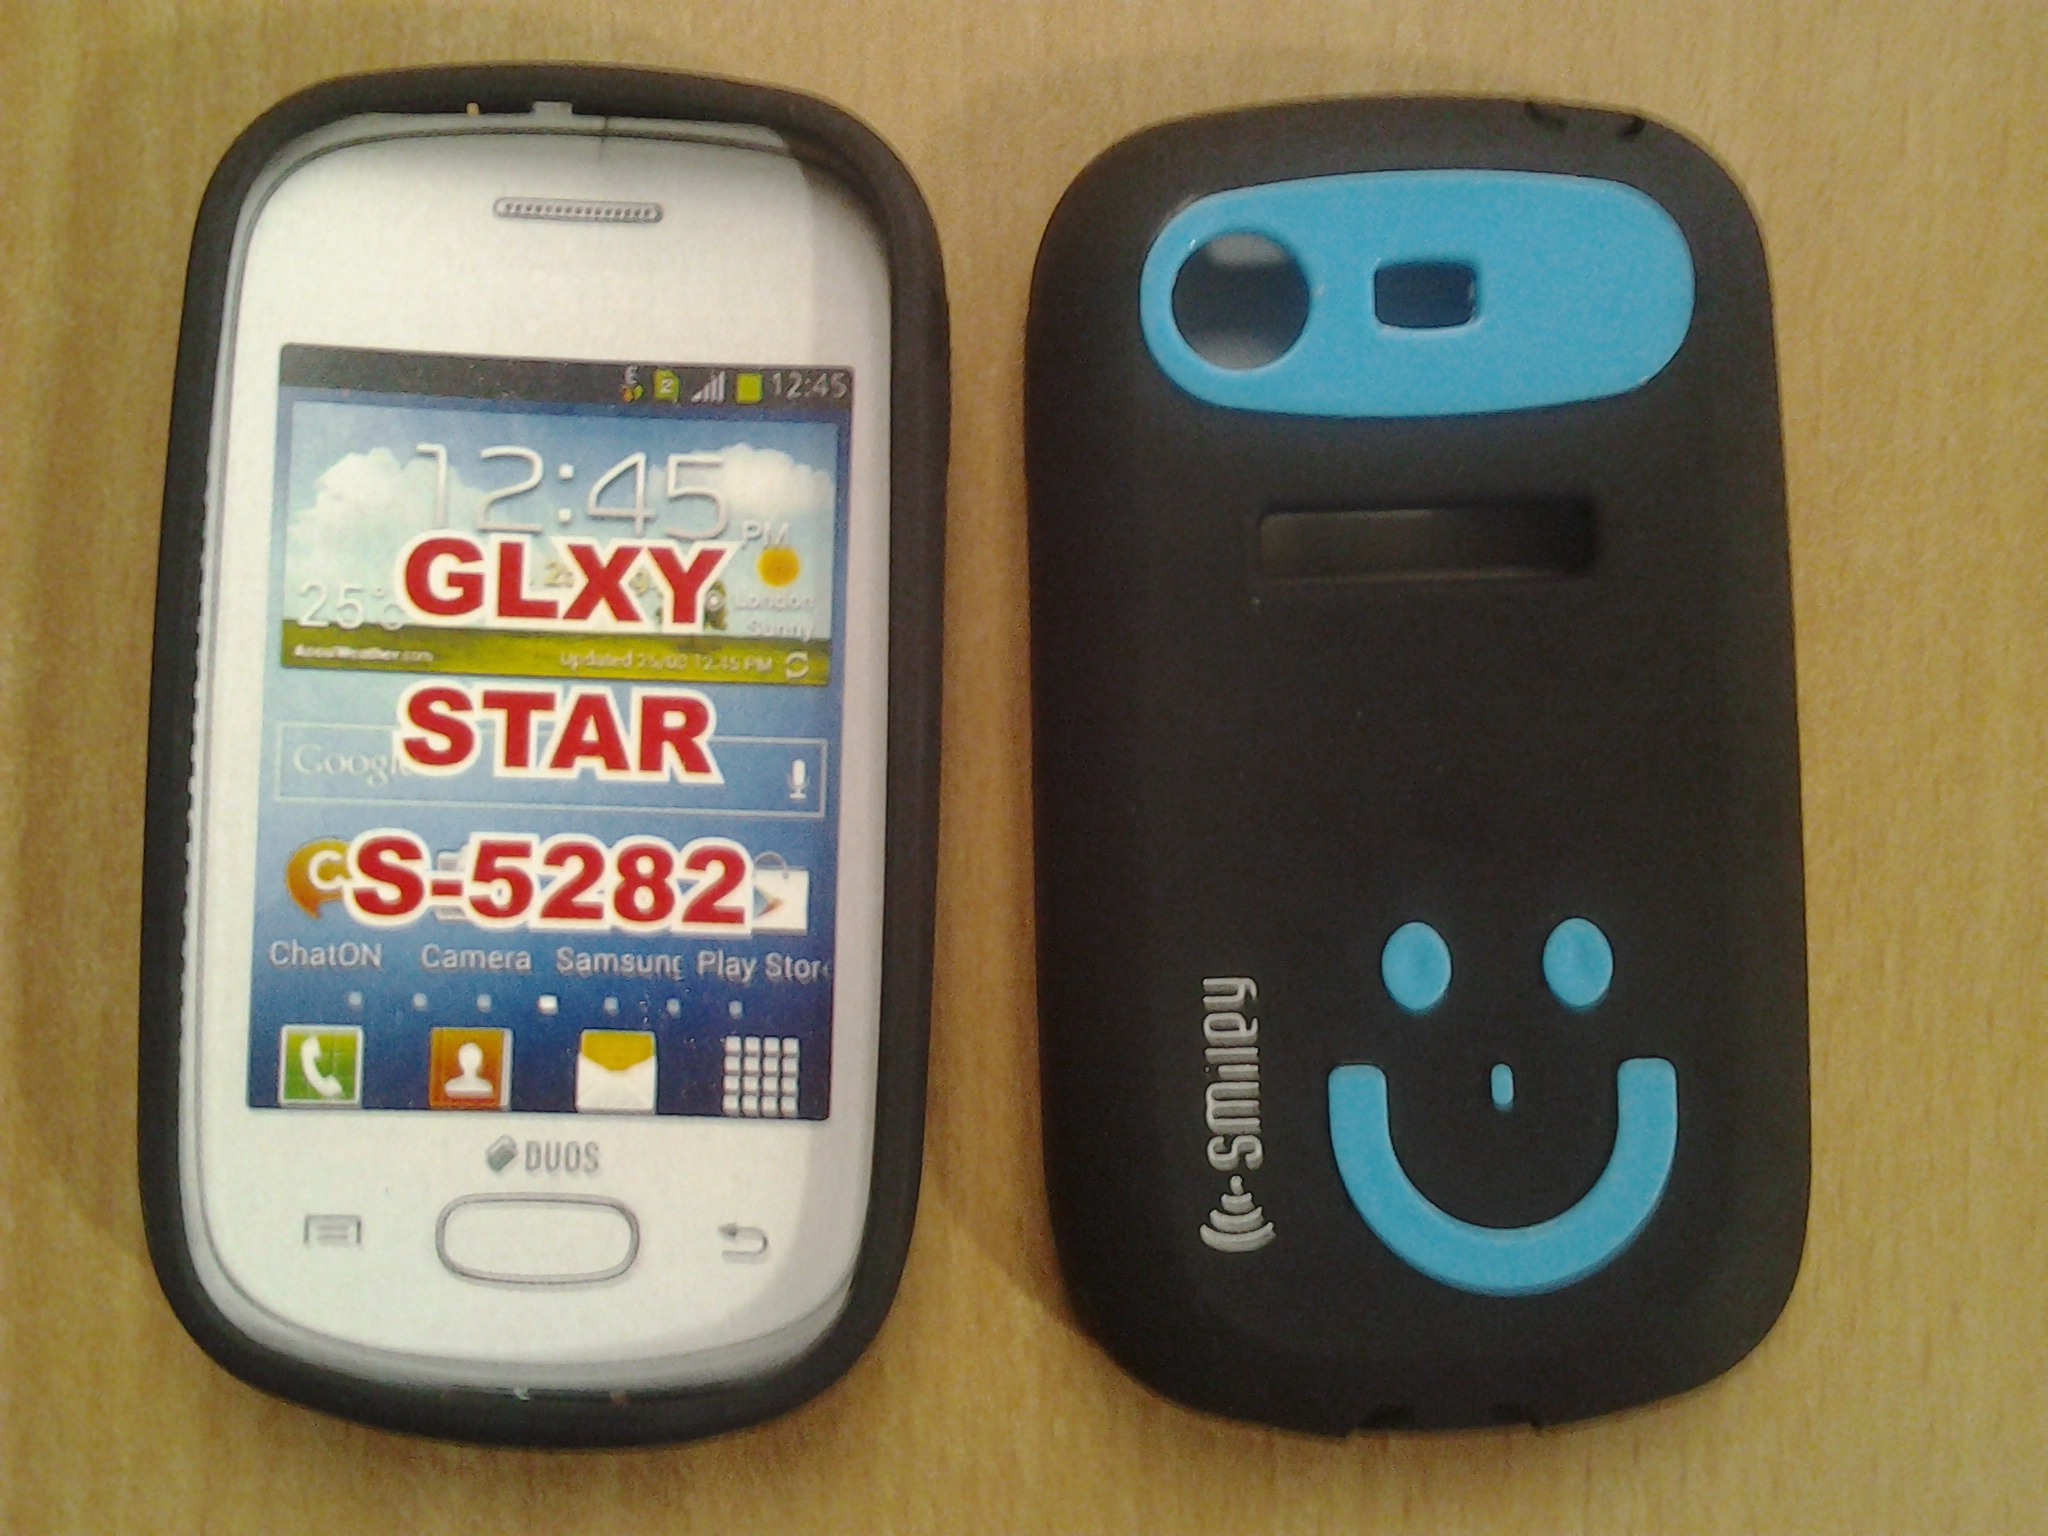 samsung galaxy star s-5282 smiley back cover